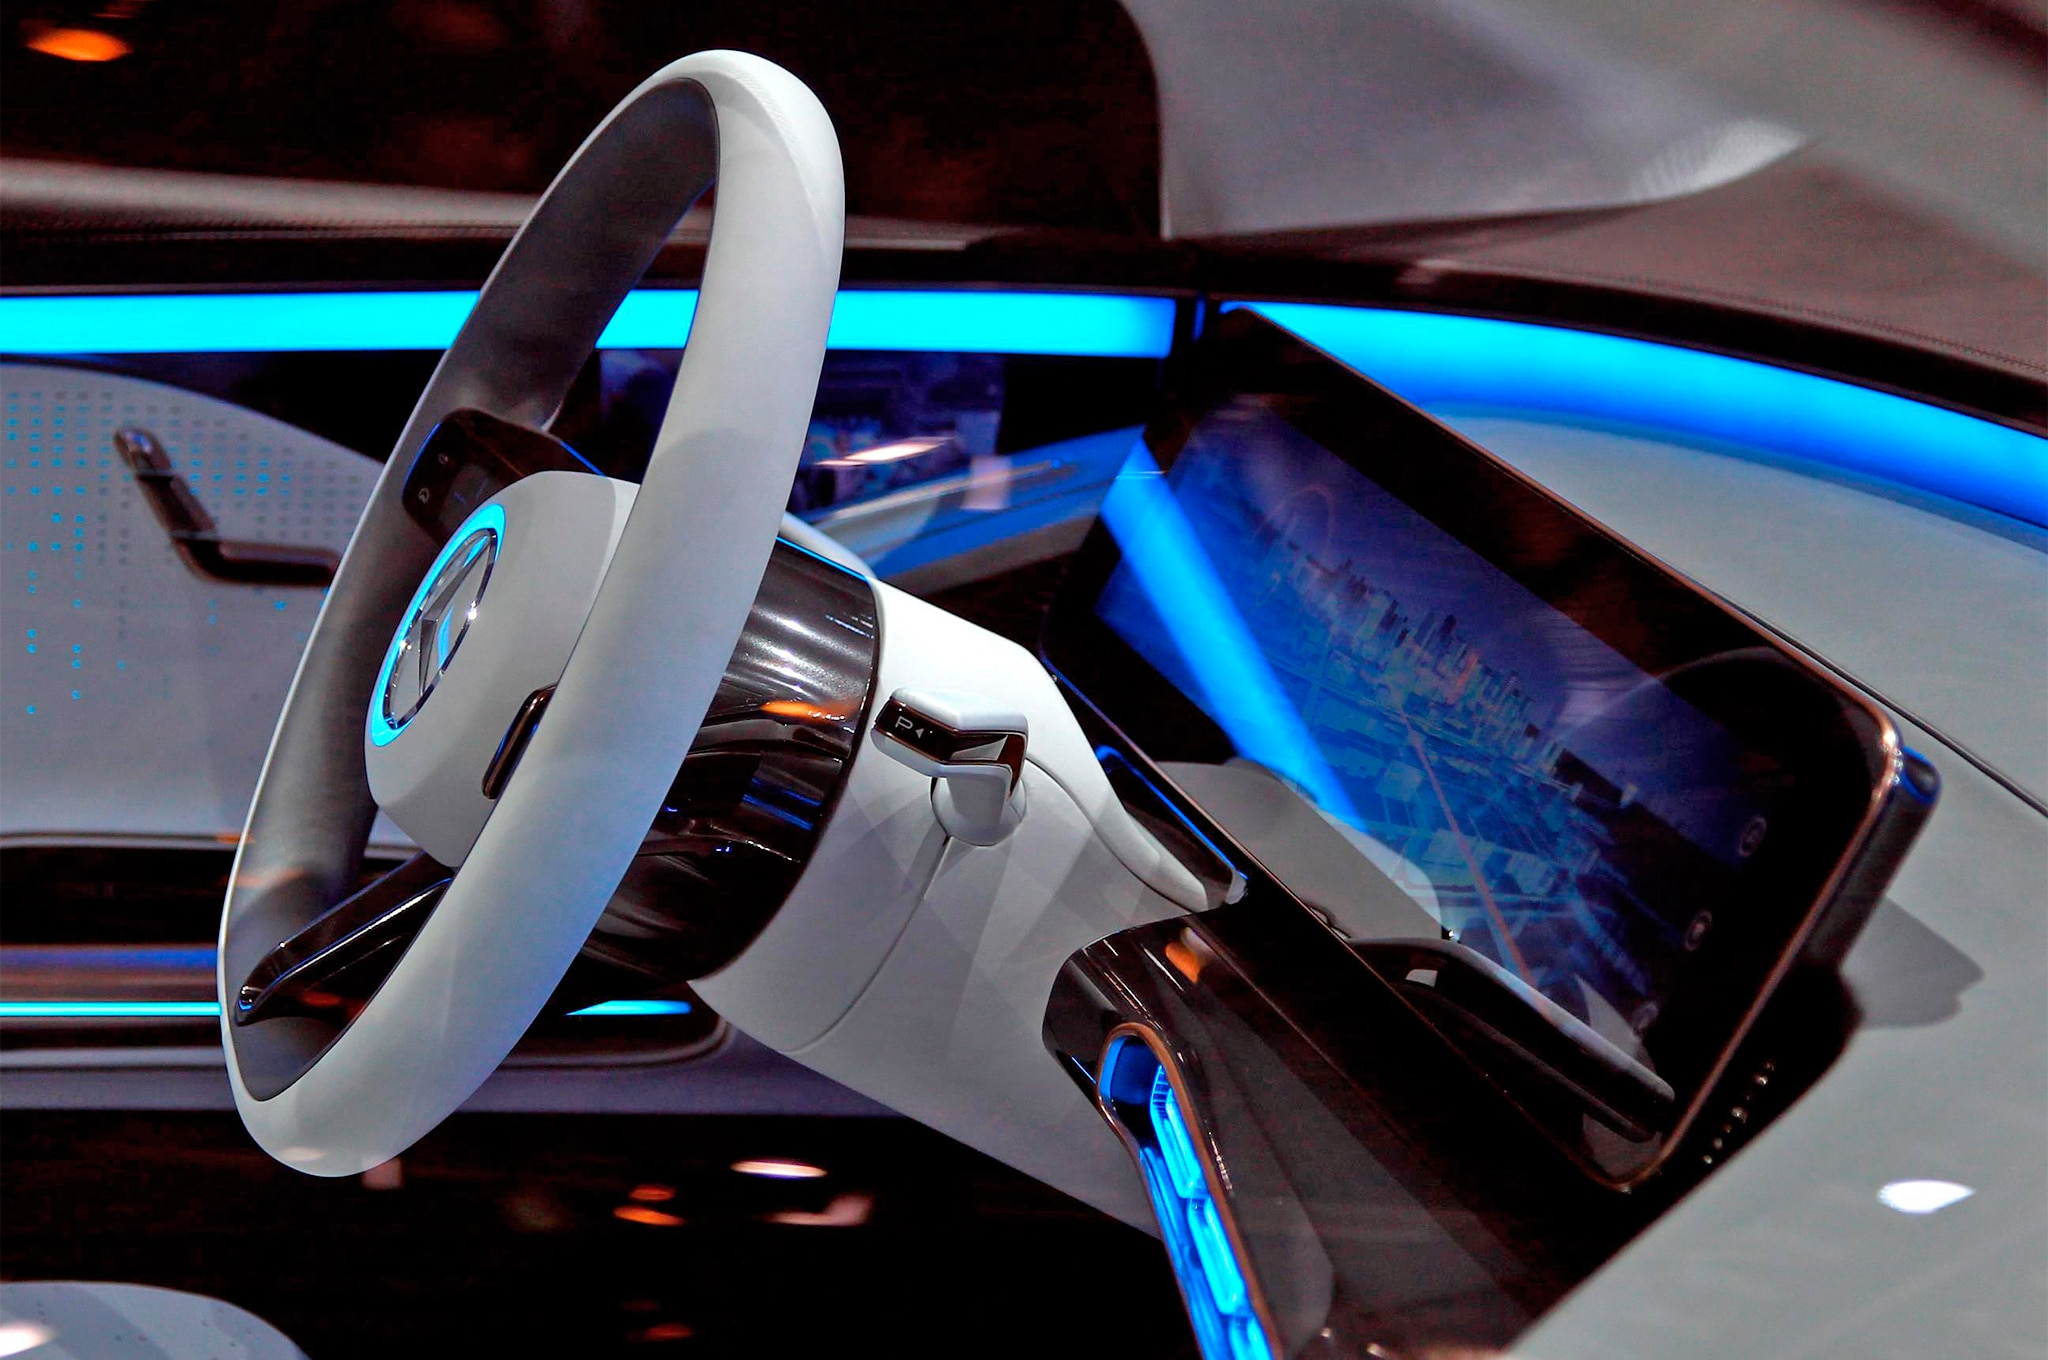 http://st.automobilemag.com/uploads/sites/11/2016/09/Mercedes-Benz-Generation-EQ-concept-steering-wheel-1.jpg